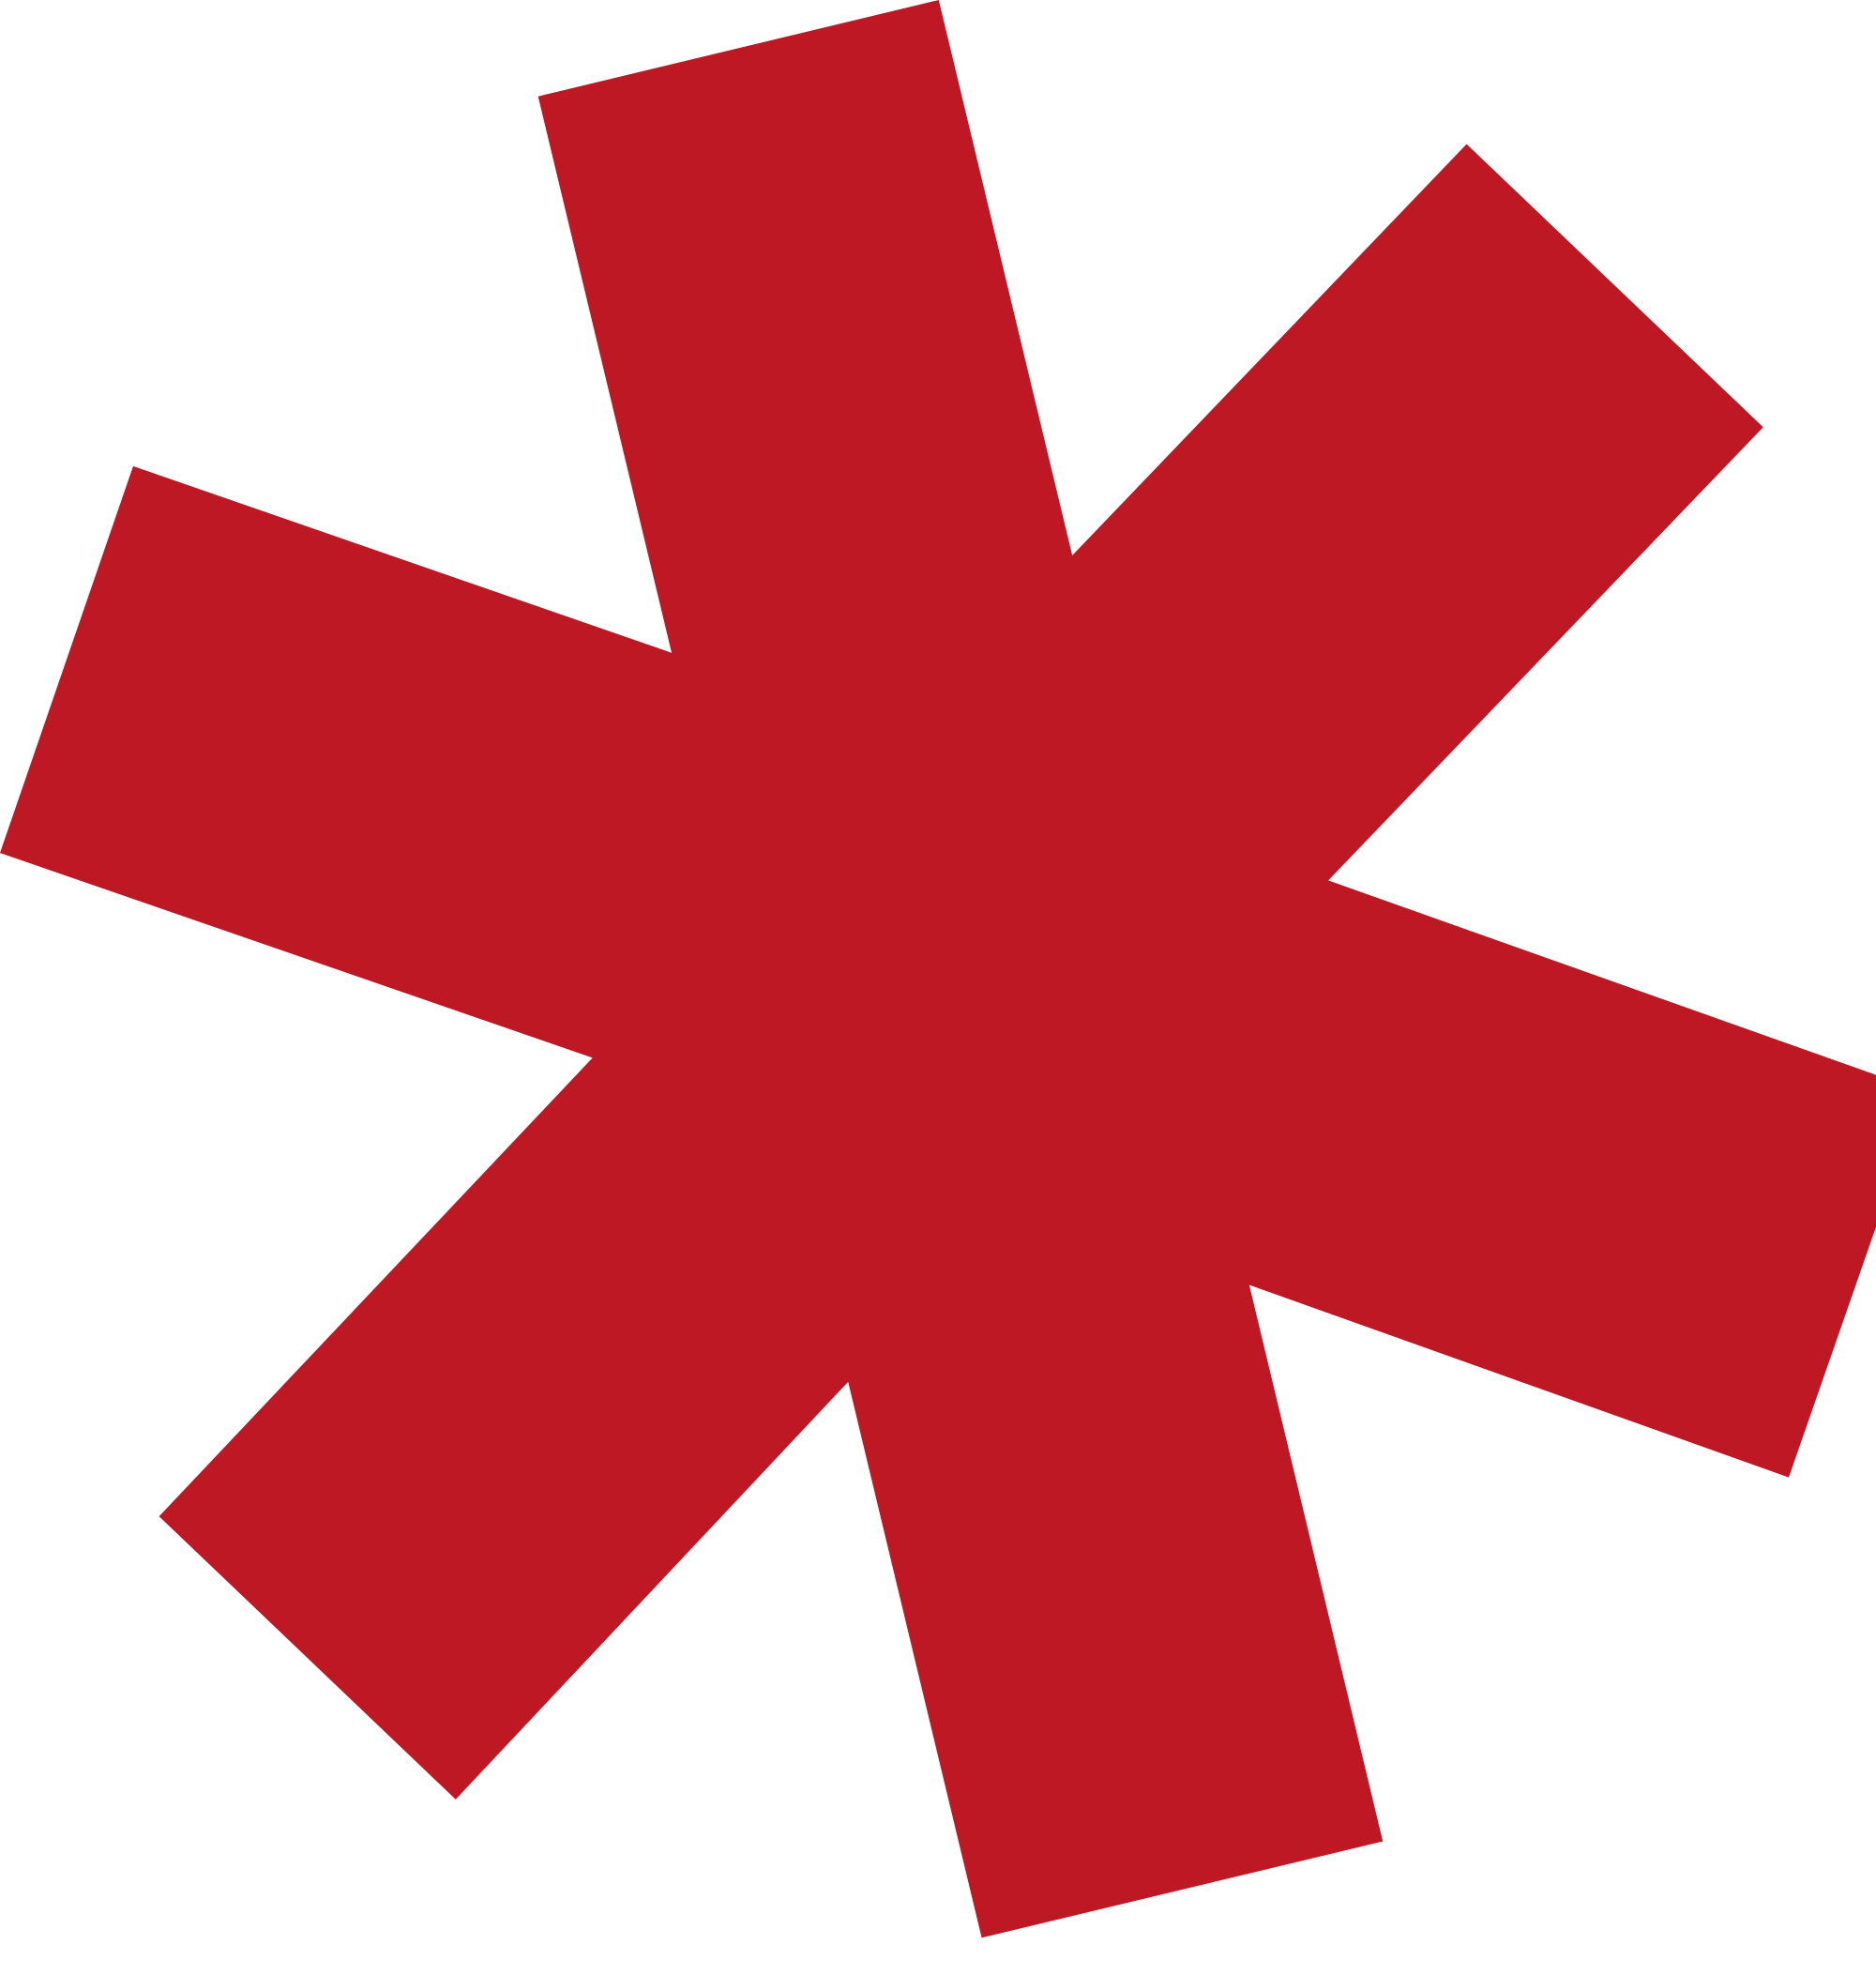 Asterisk PNG Clipart.